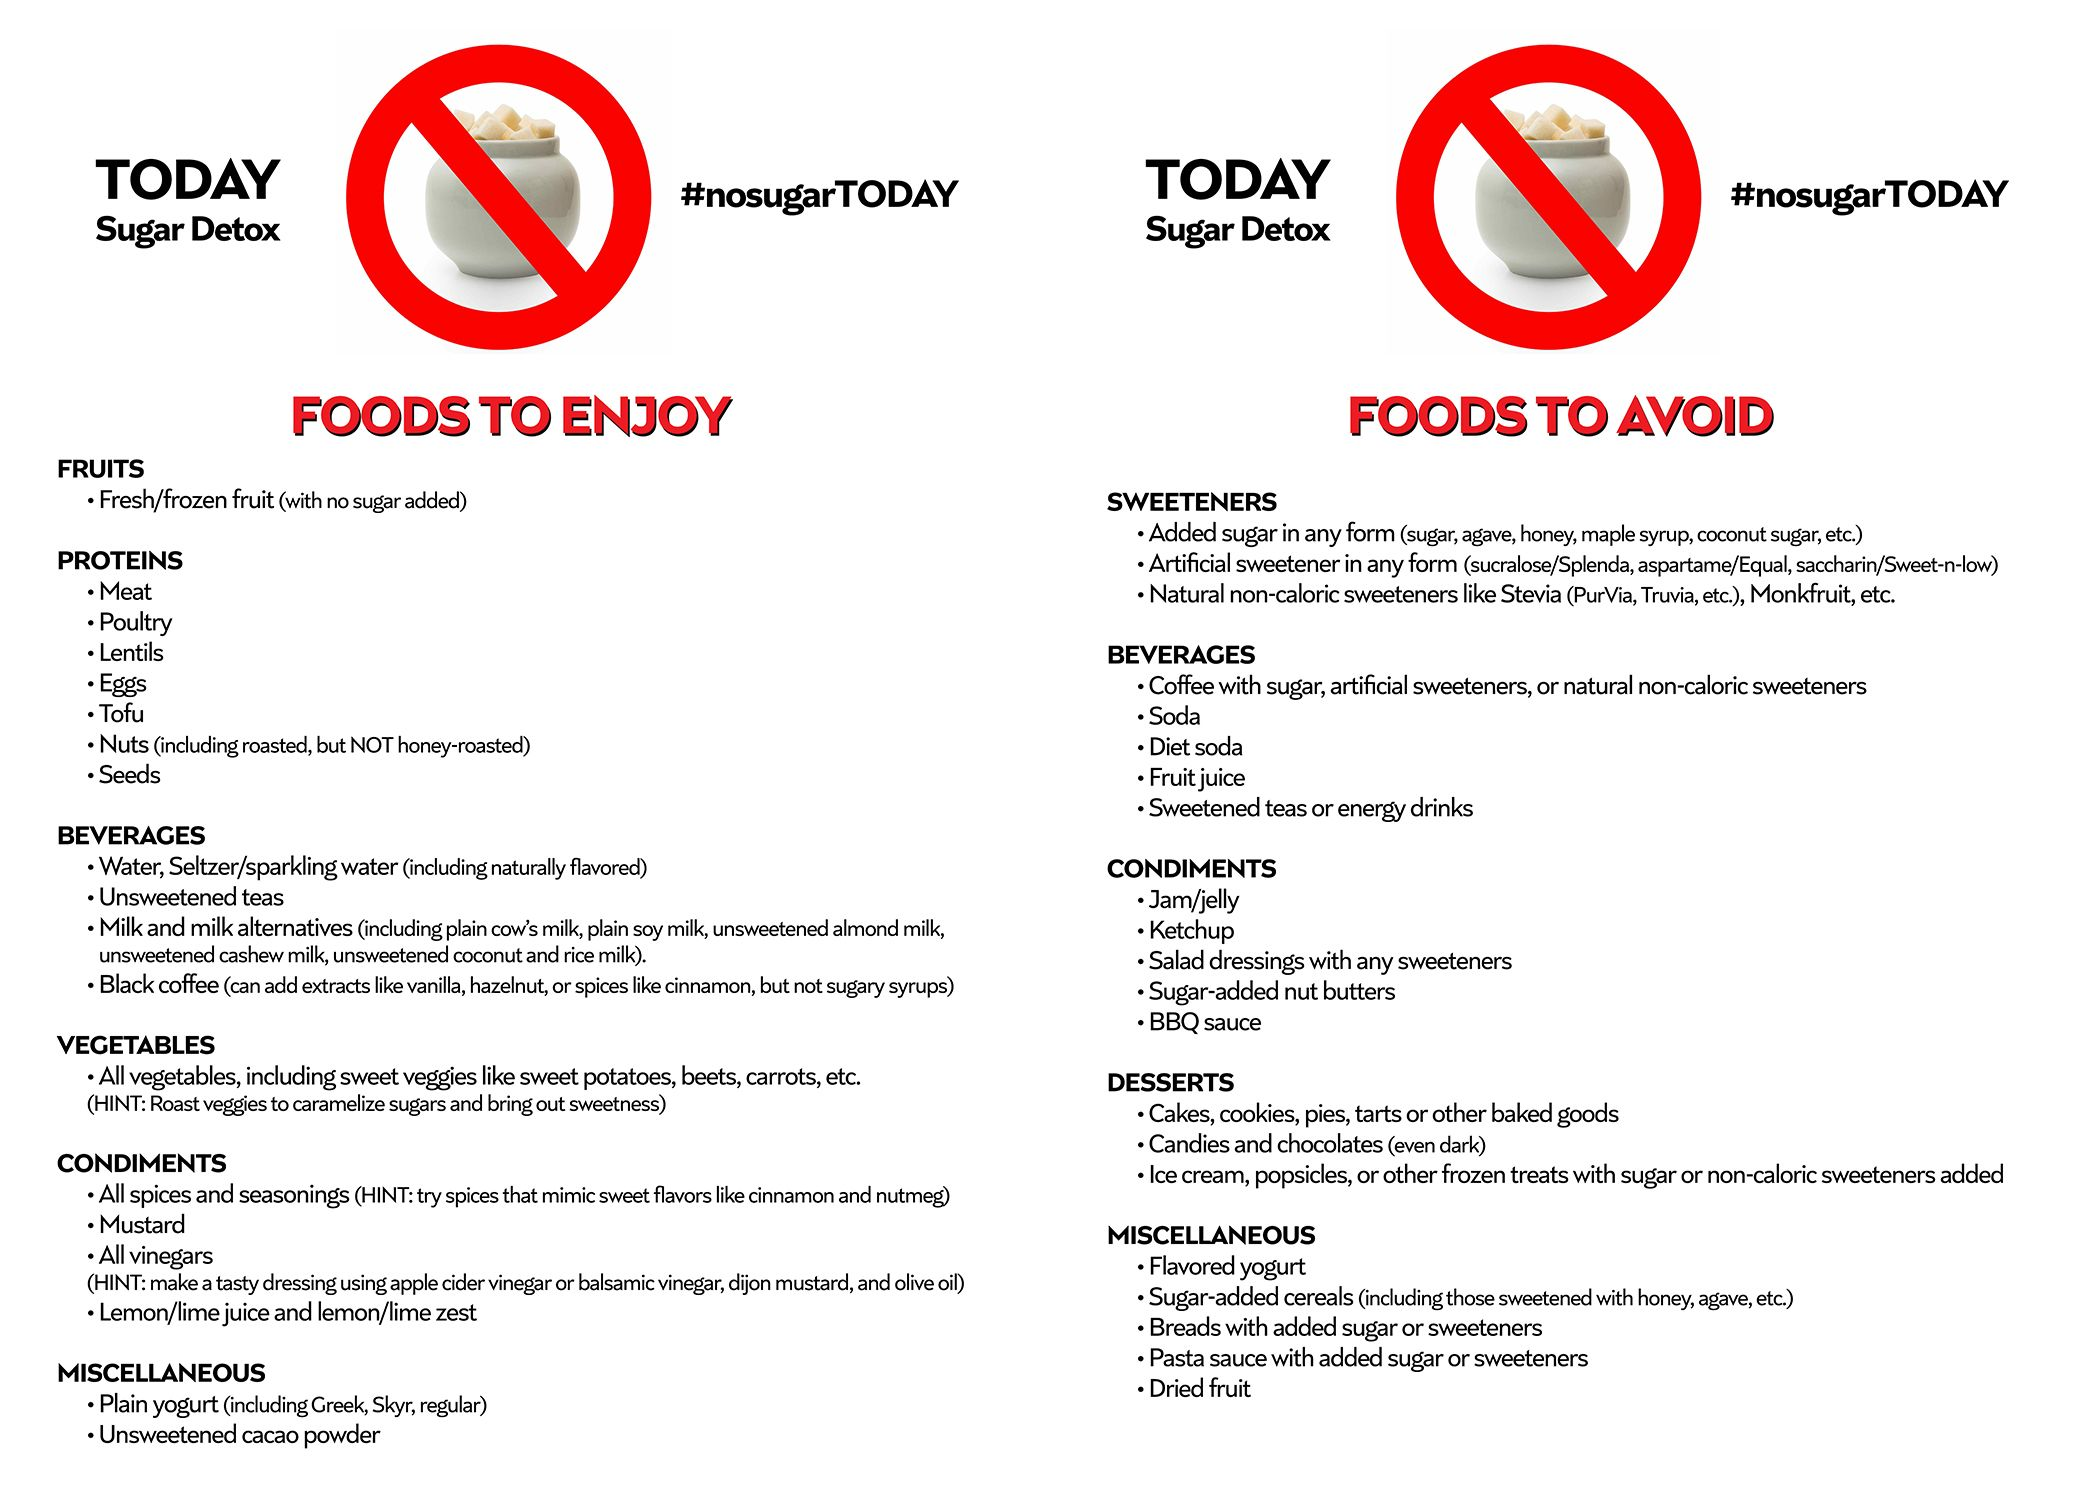 Your cheat sheet of foods you can enjoy and those to avoid on my snacks nvjuhfo Images